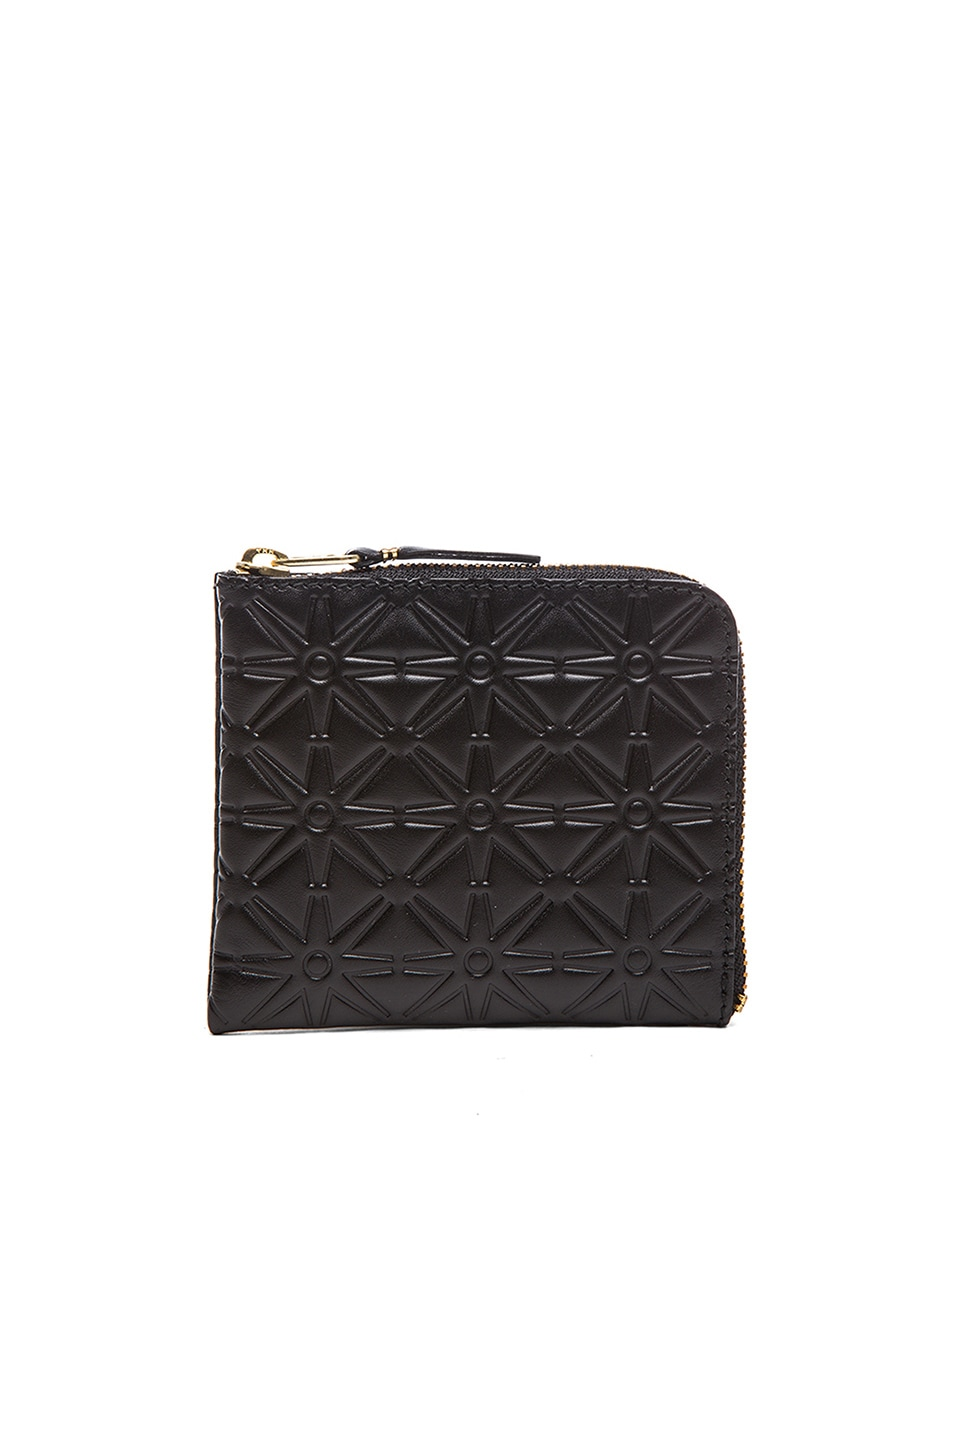 COMME DES GARCONS SMALL STAR EMBOSSED ZIP WALLET IN BLACK